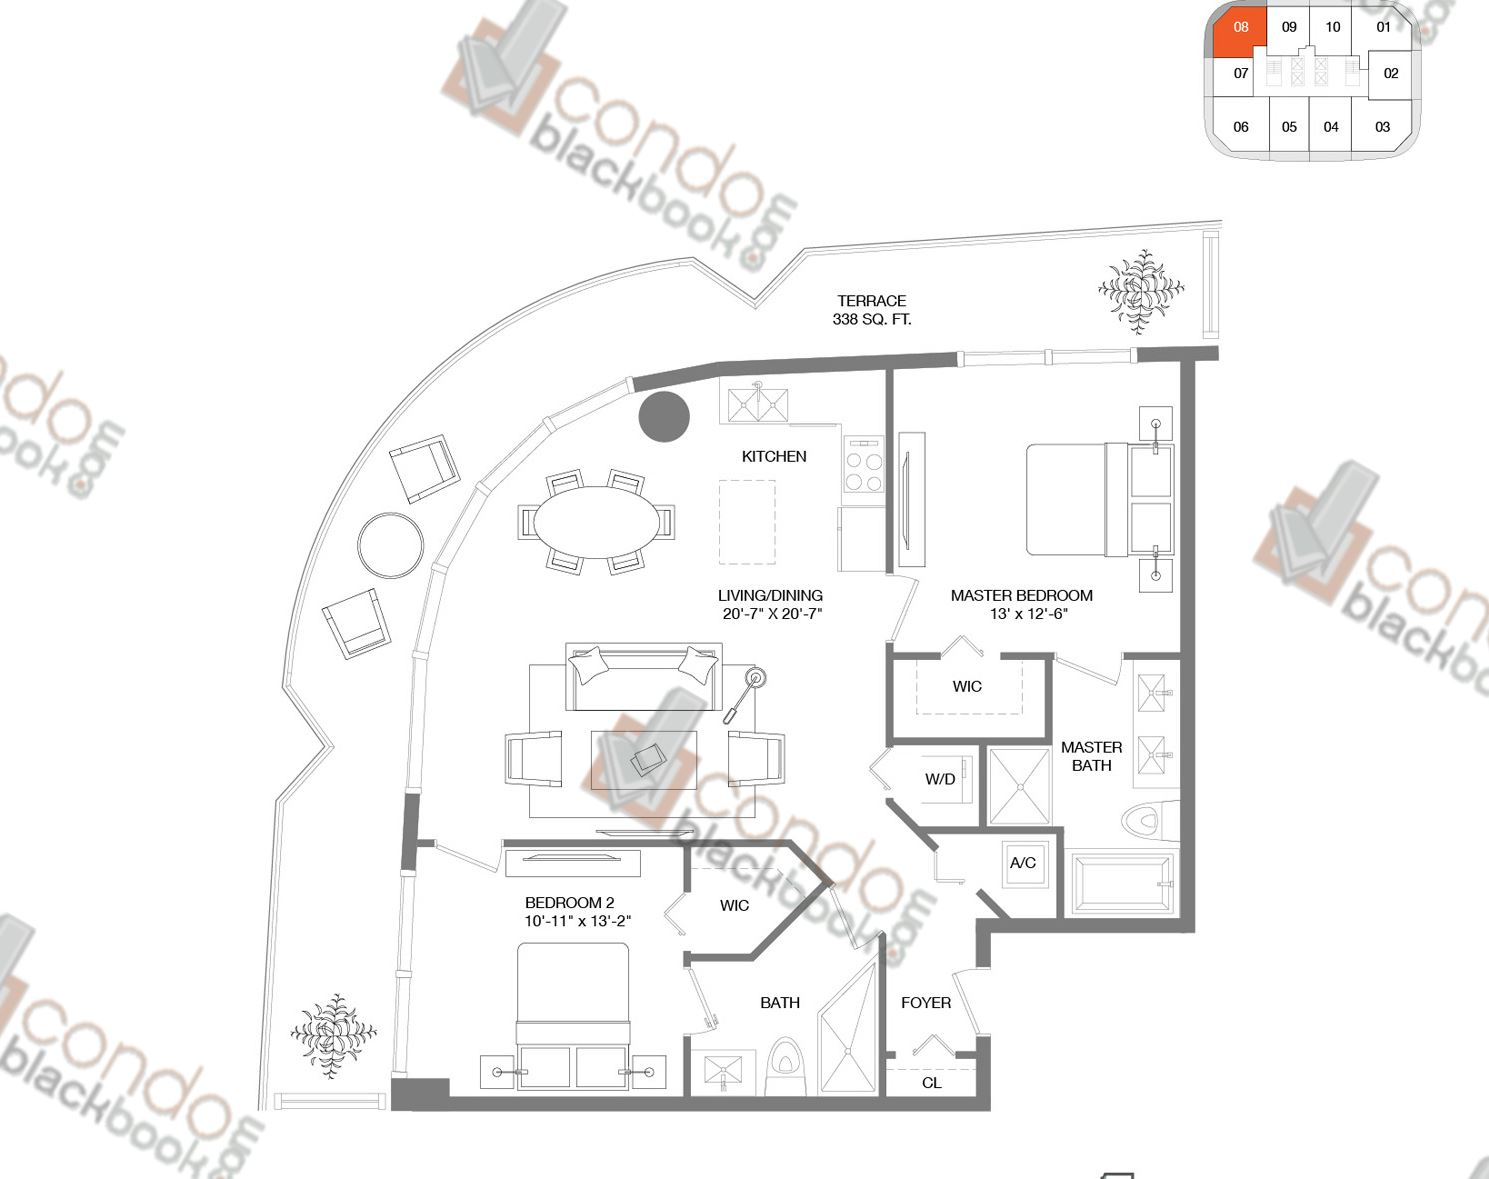 Floor plan for Brickell Heights East Tower Brickell Miami, model Residence 08, line 08, 2/2 bedrooms, 1,054 sq ft